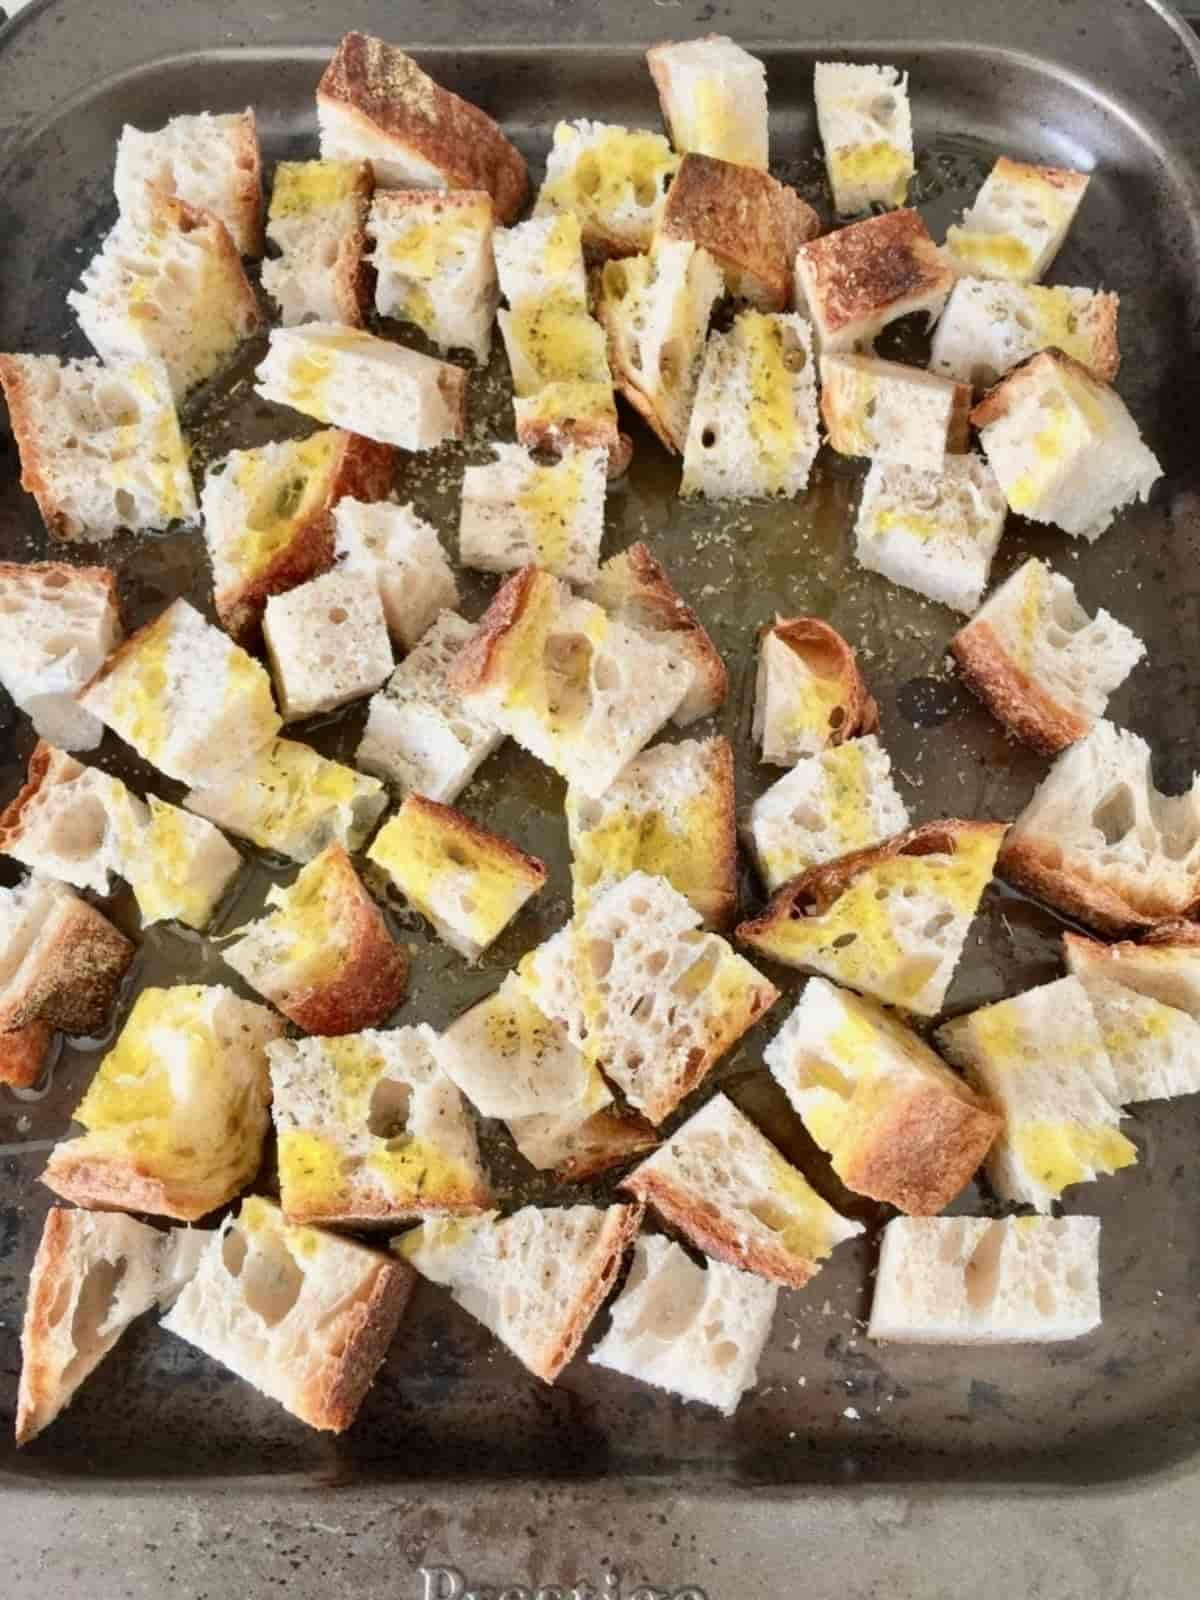 Chunks of bread sprinkled with oil & seasoning on a baking tray.